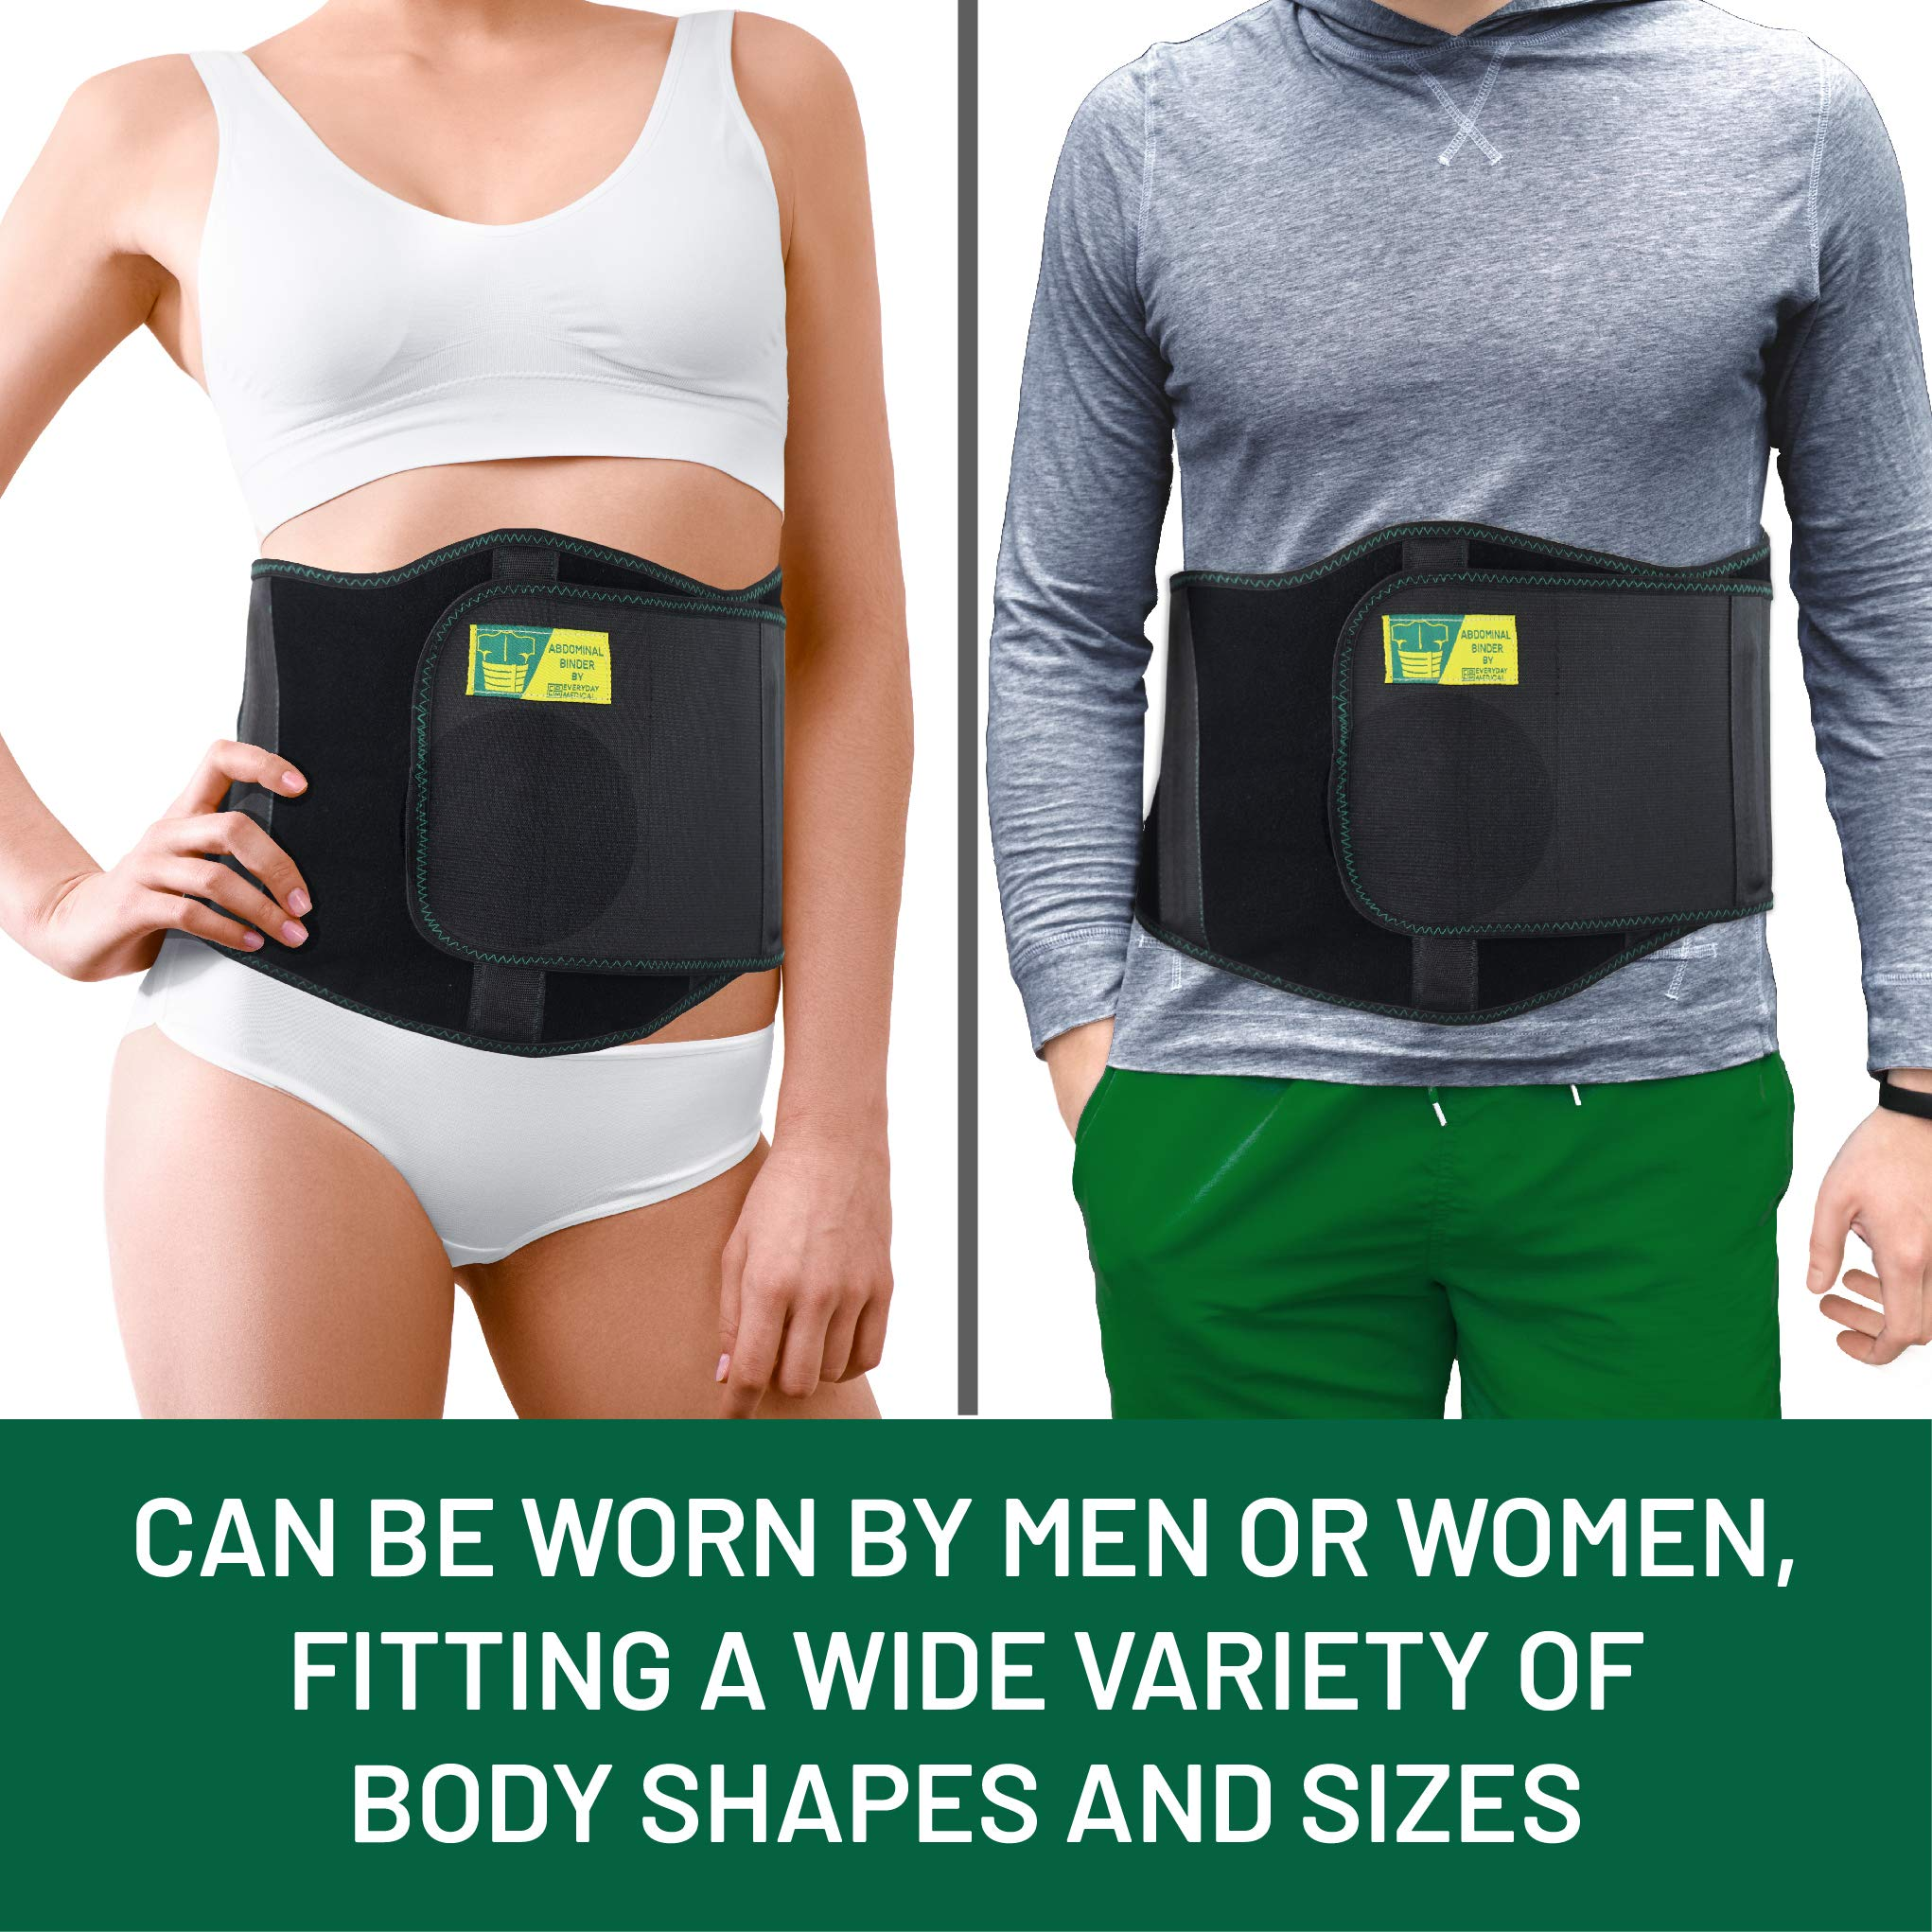 Ergonomic Umbilical Hernia Belt – Abdominal Binder for Hernia Support – Umbilical Navel Hernia Strap with Compression Pad – Ventral Hernia Support for Men and Women - Large/XXL Plus Size (42-57 in) by Everyday Medical (Image #4)